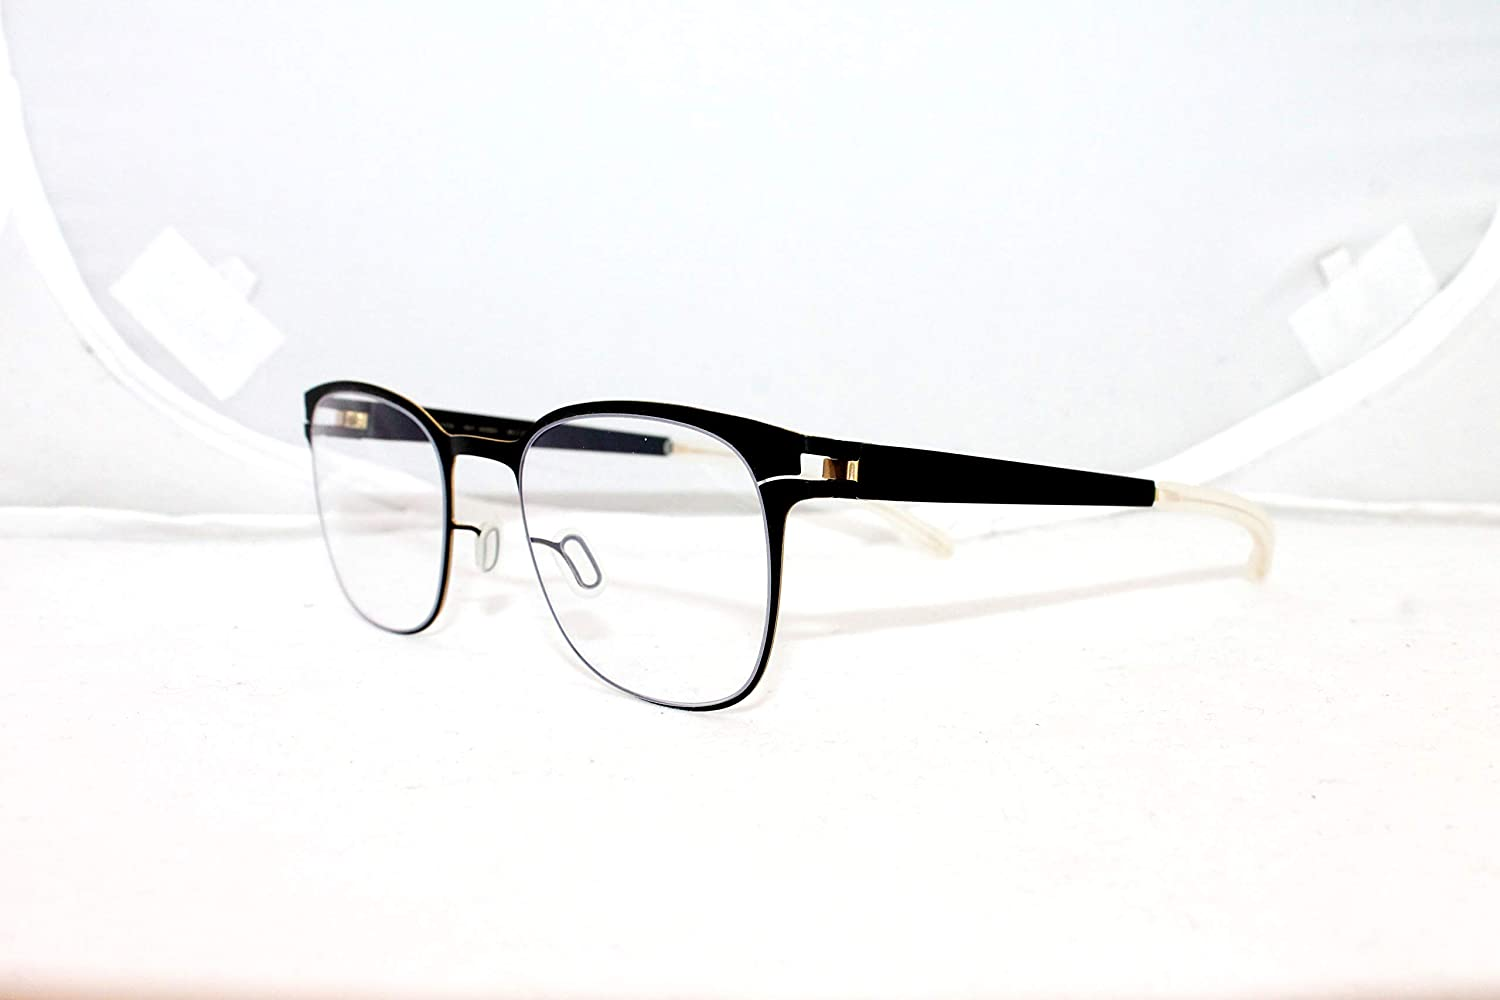 B07S6FX2VP MYKITA Agnes Black/Gold Edges 279 Eyeglasses Frame Made in Germany 61ELQJ5sEdL.SL1500_